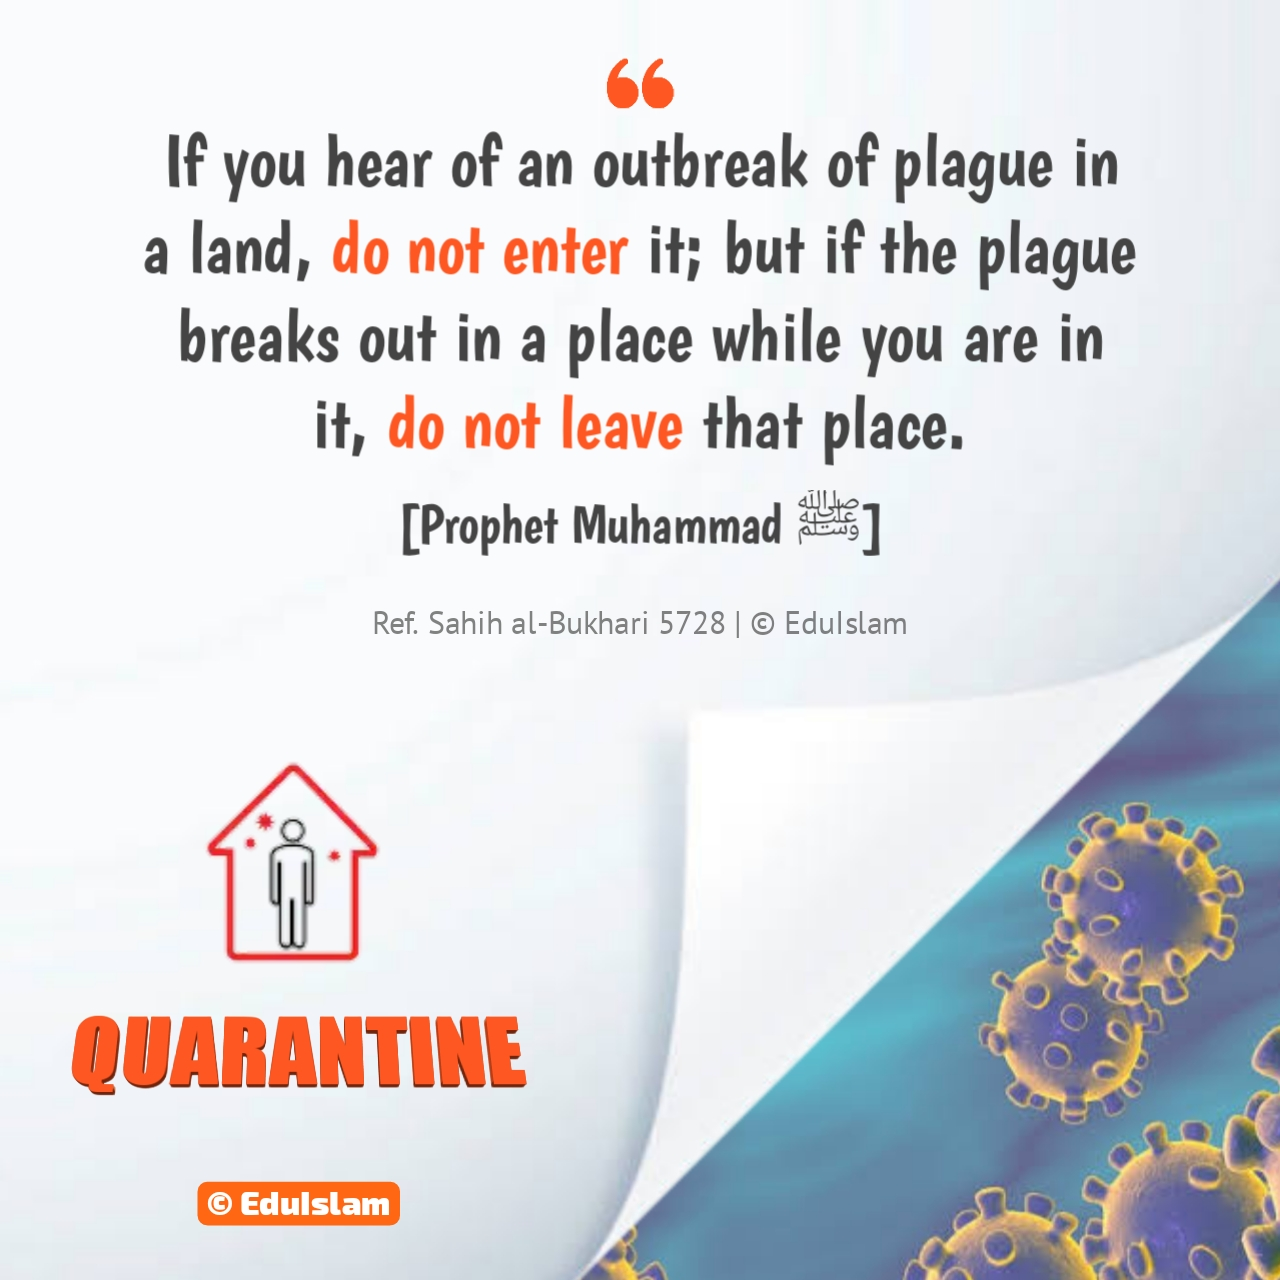 If you hear of an outbreak of plague in a land, do not enter it, Prophet Muhammad about epidemic, Prophet Muhammad ﷺ about Quarantine, Islam about epidemic, Coronavirus outbreak, COVID 19 crisis, hadith about epidemic, EduIslam